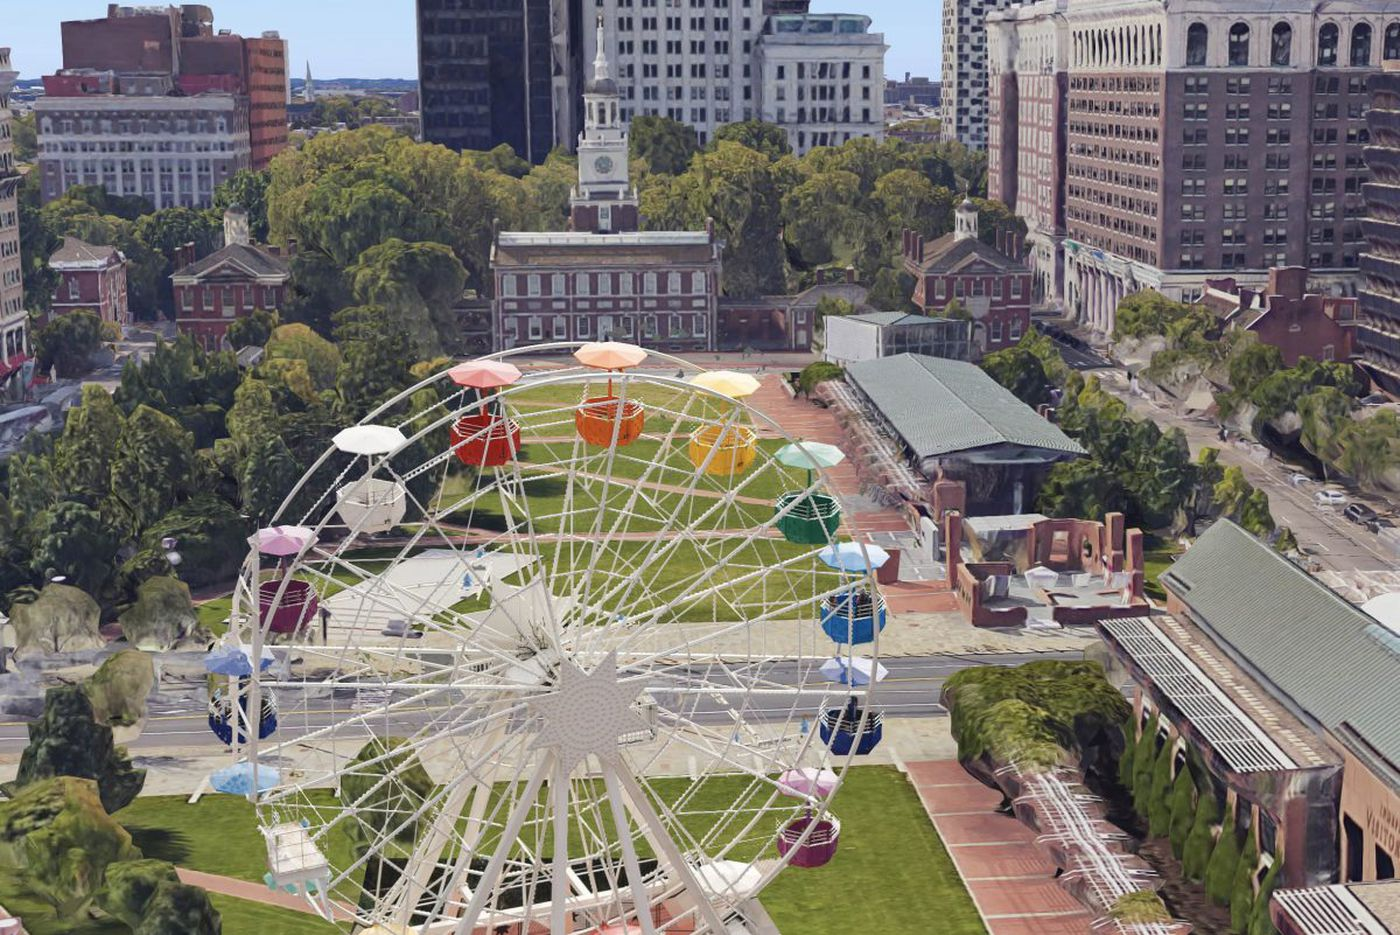 A Ferris wheel and robots for Independence Mall? Why not? | Stu Bykofsky